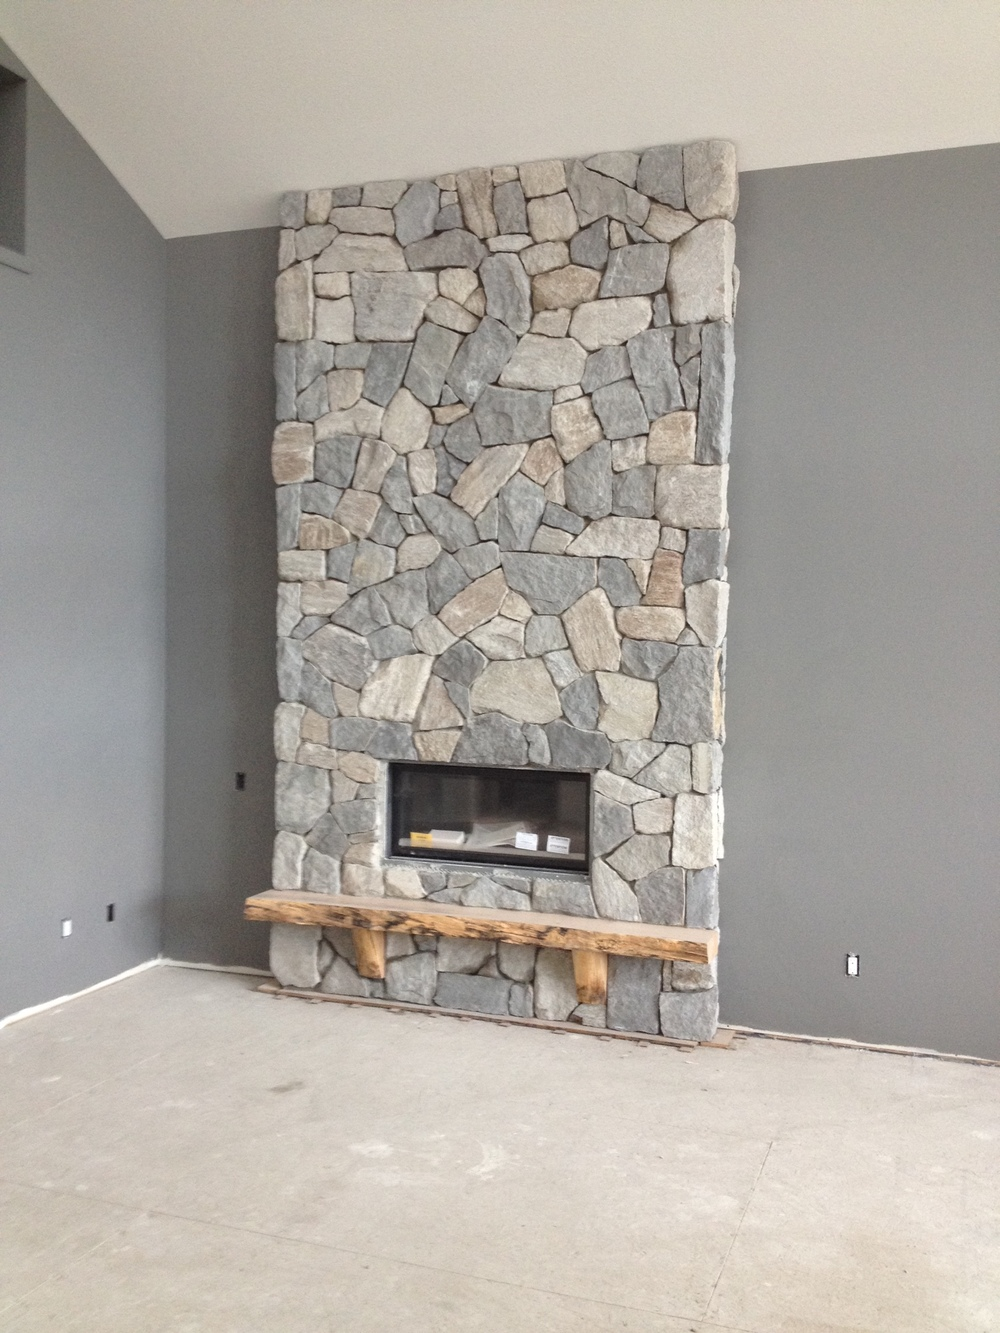 Dream Home Fireplace 2015.jpeg